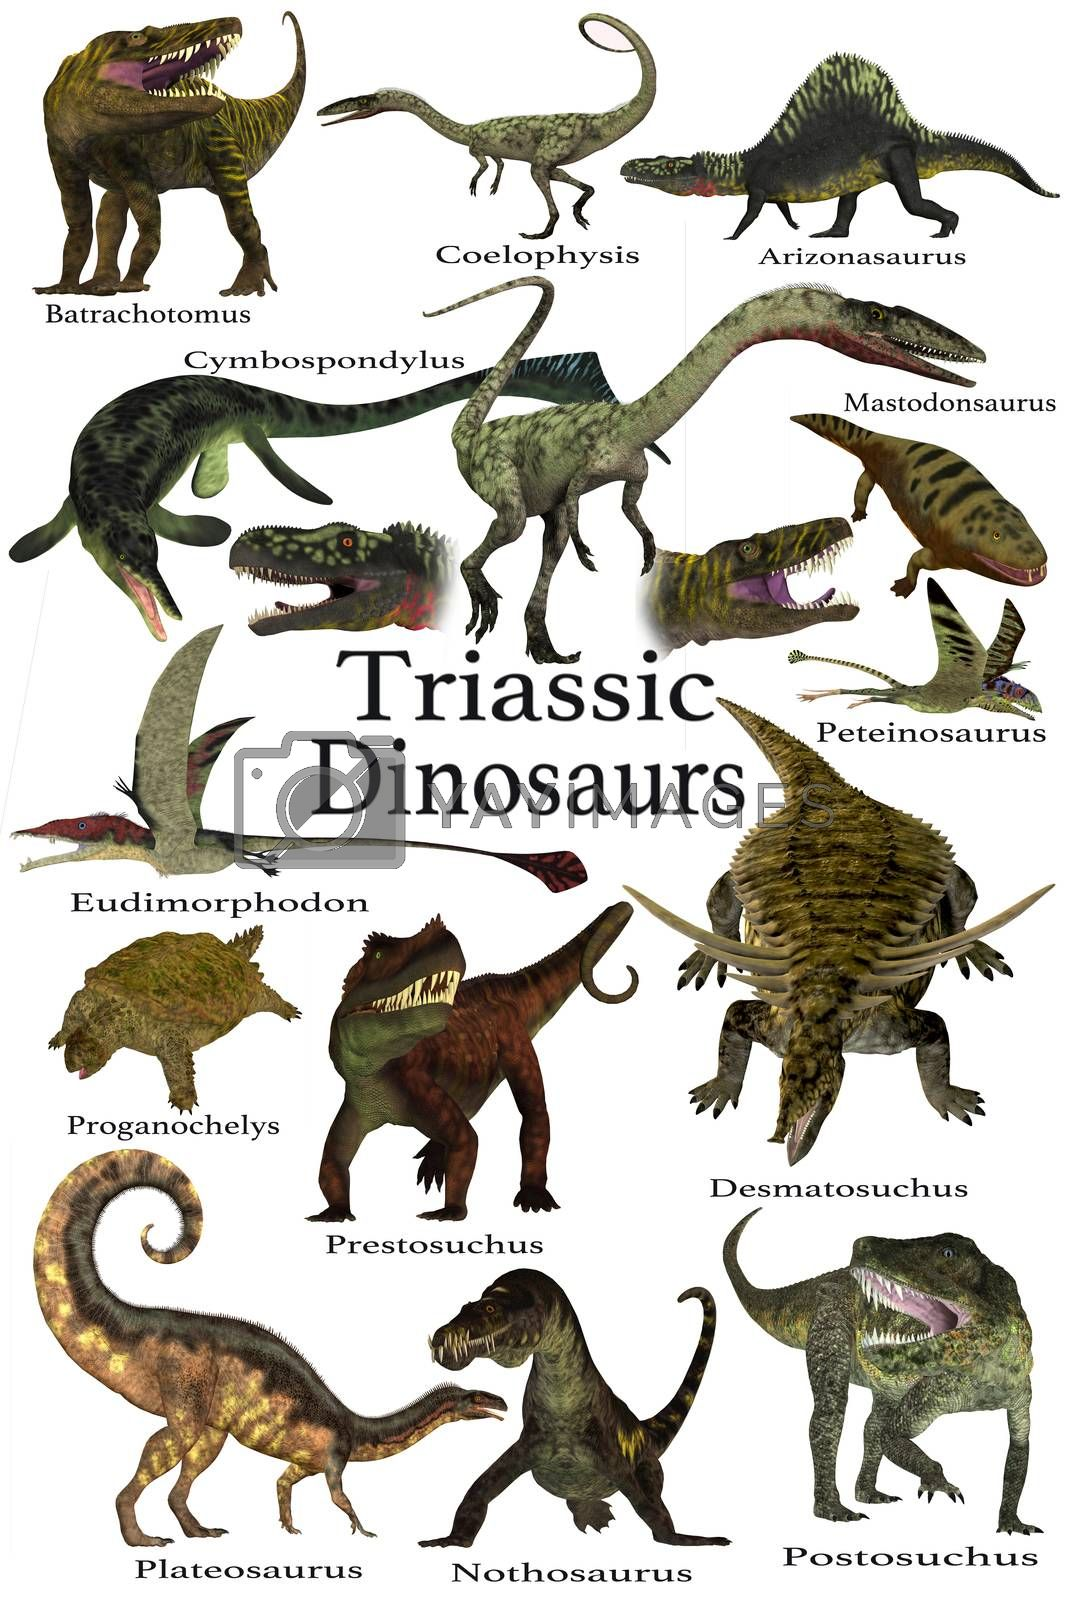 A collection of various dinosaur and marine animals that lived during the Triassic Period of Earth's history.